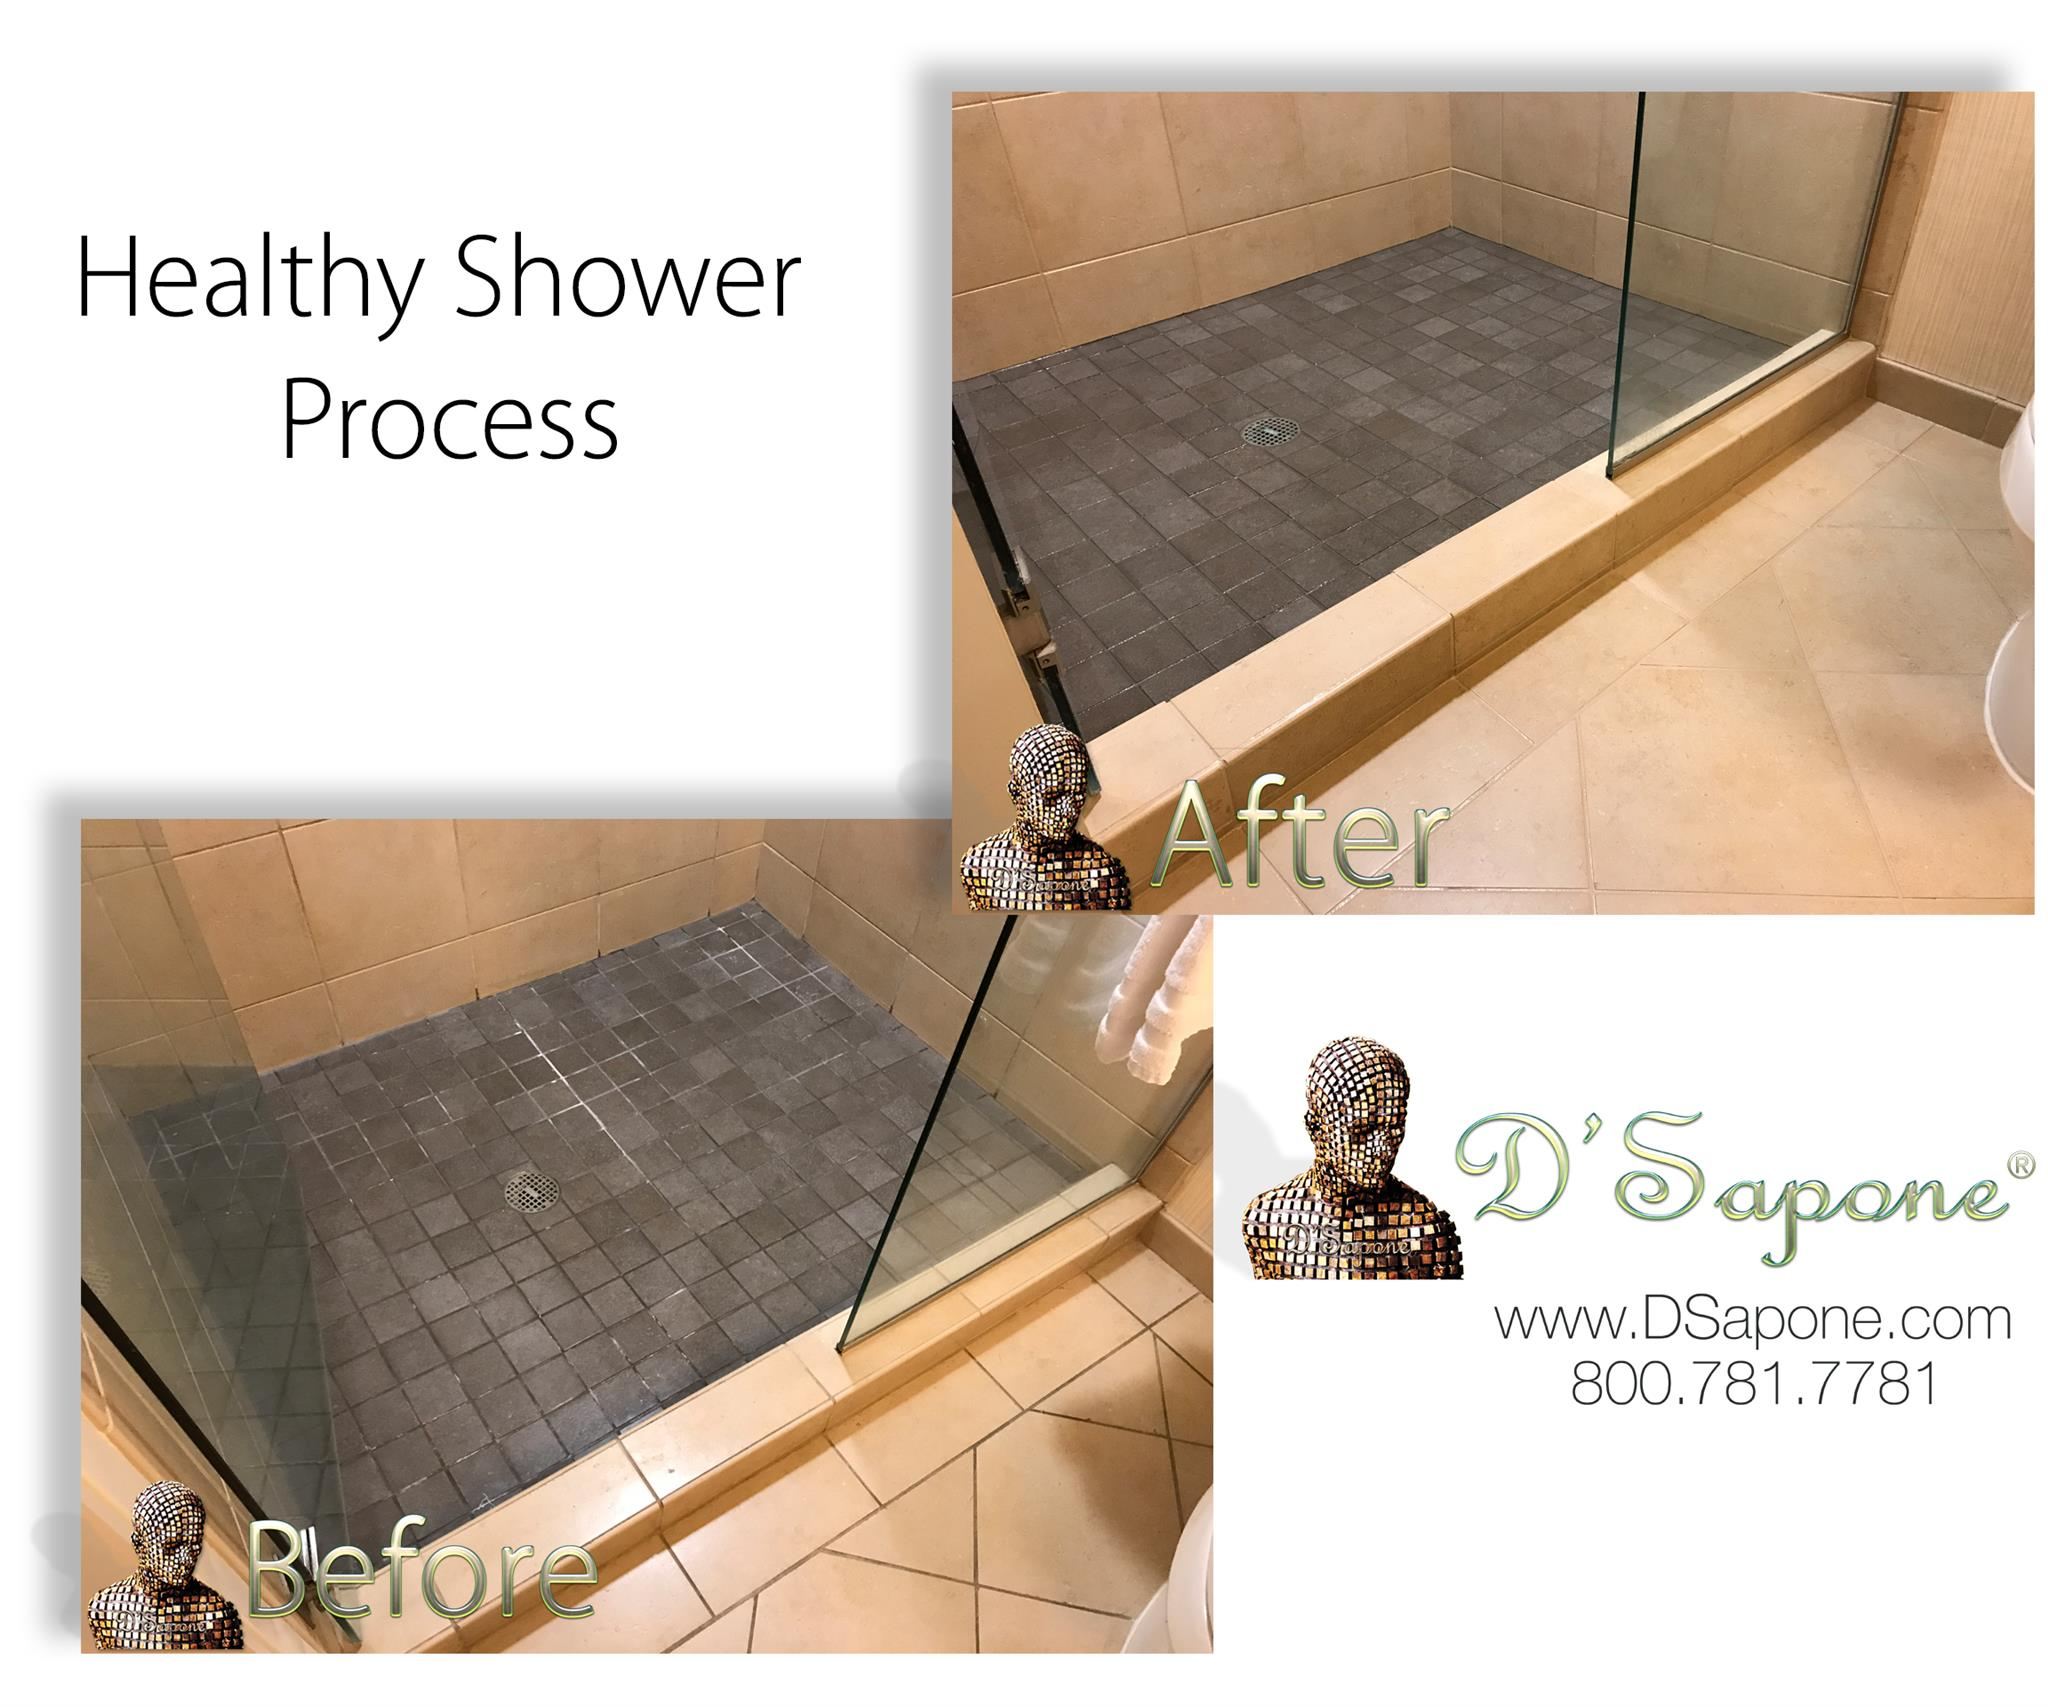 California bath Restorations – San Diego Tile Restoration Contractors business directory